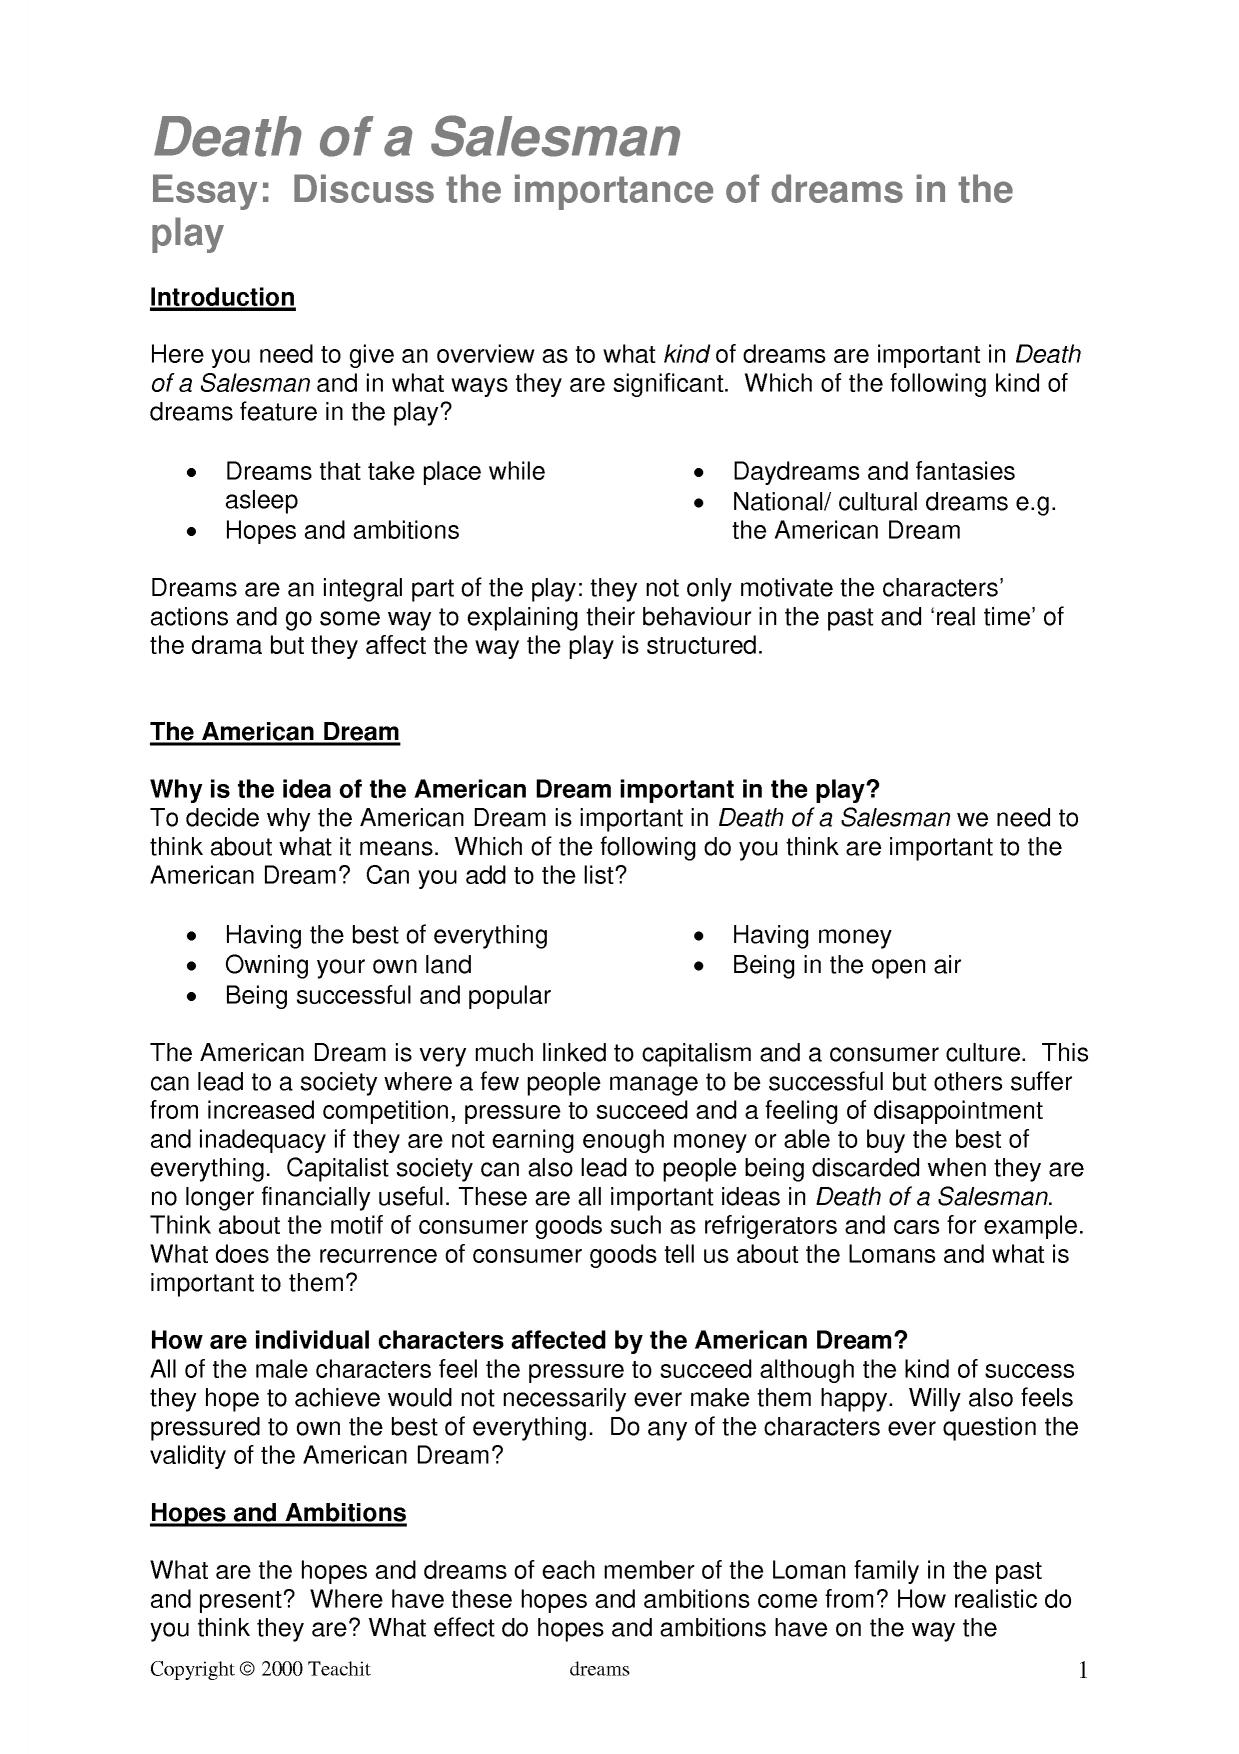 002 X16856 Php Pagespeed Ic Ebntk2isnc Essay Example Death Of Phenomenal A Salesman Topics Argumentative Full